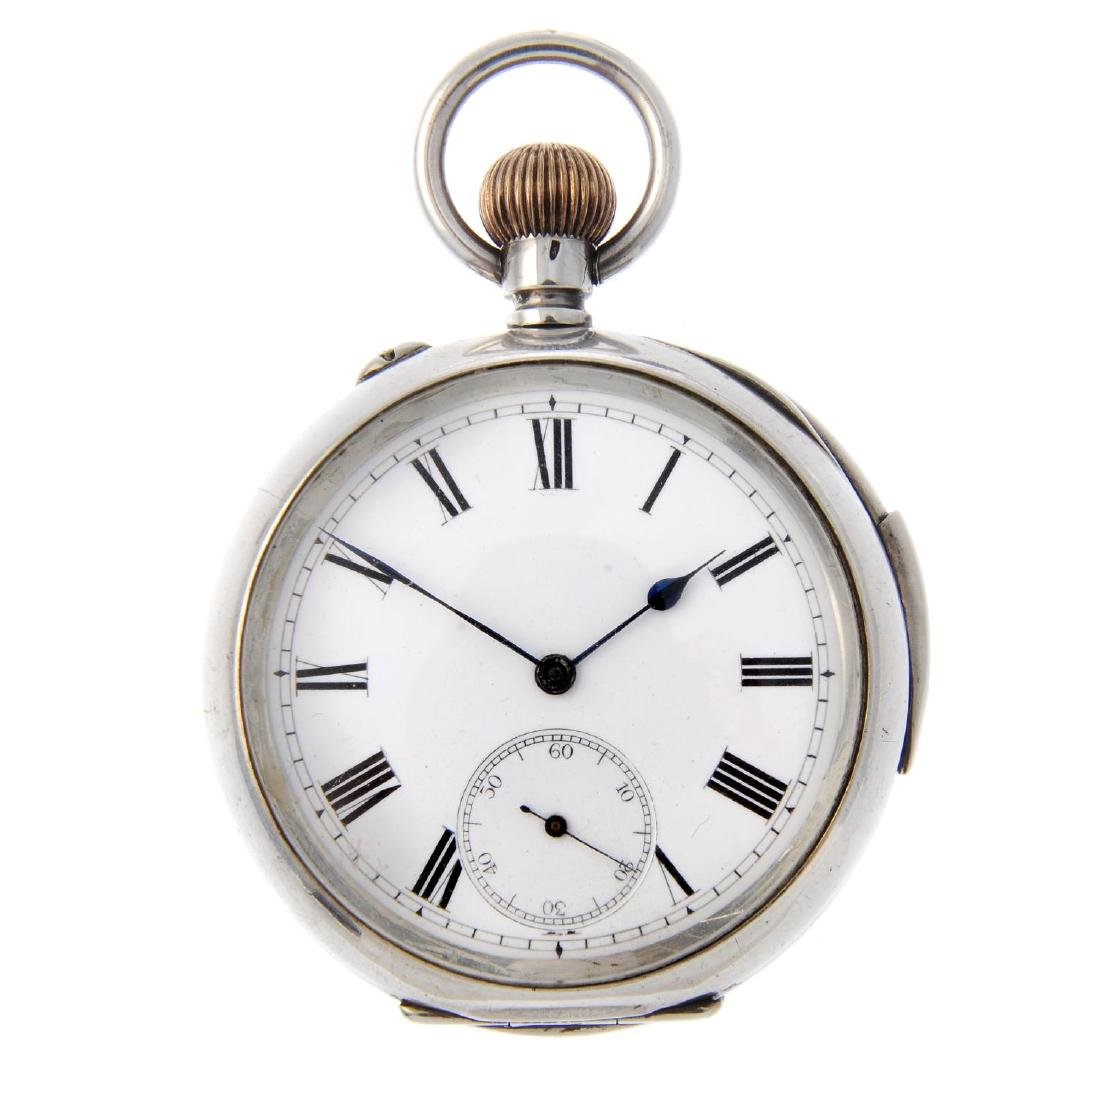 An open face repeater pocket watch. White metal case,